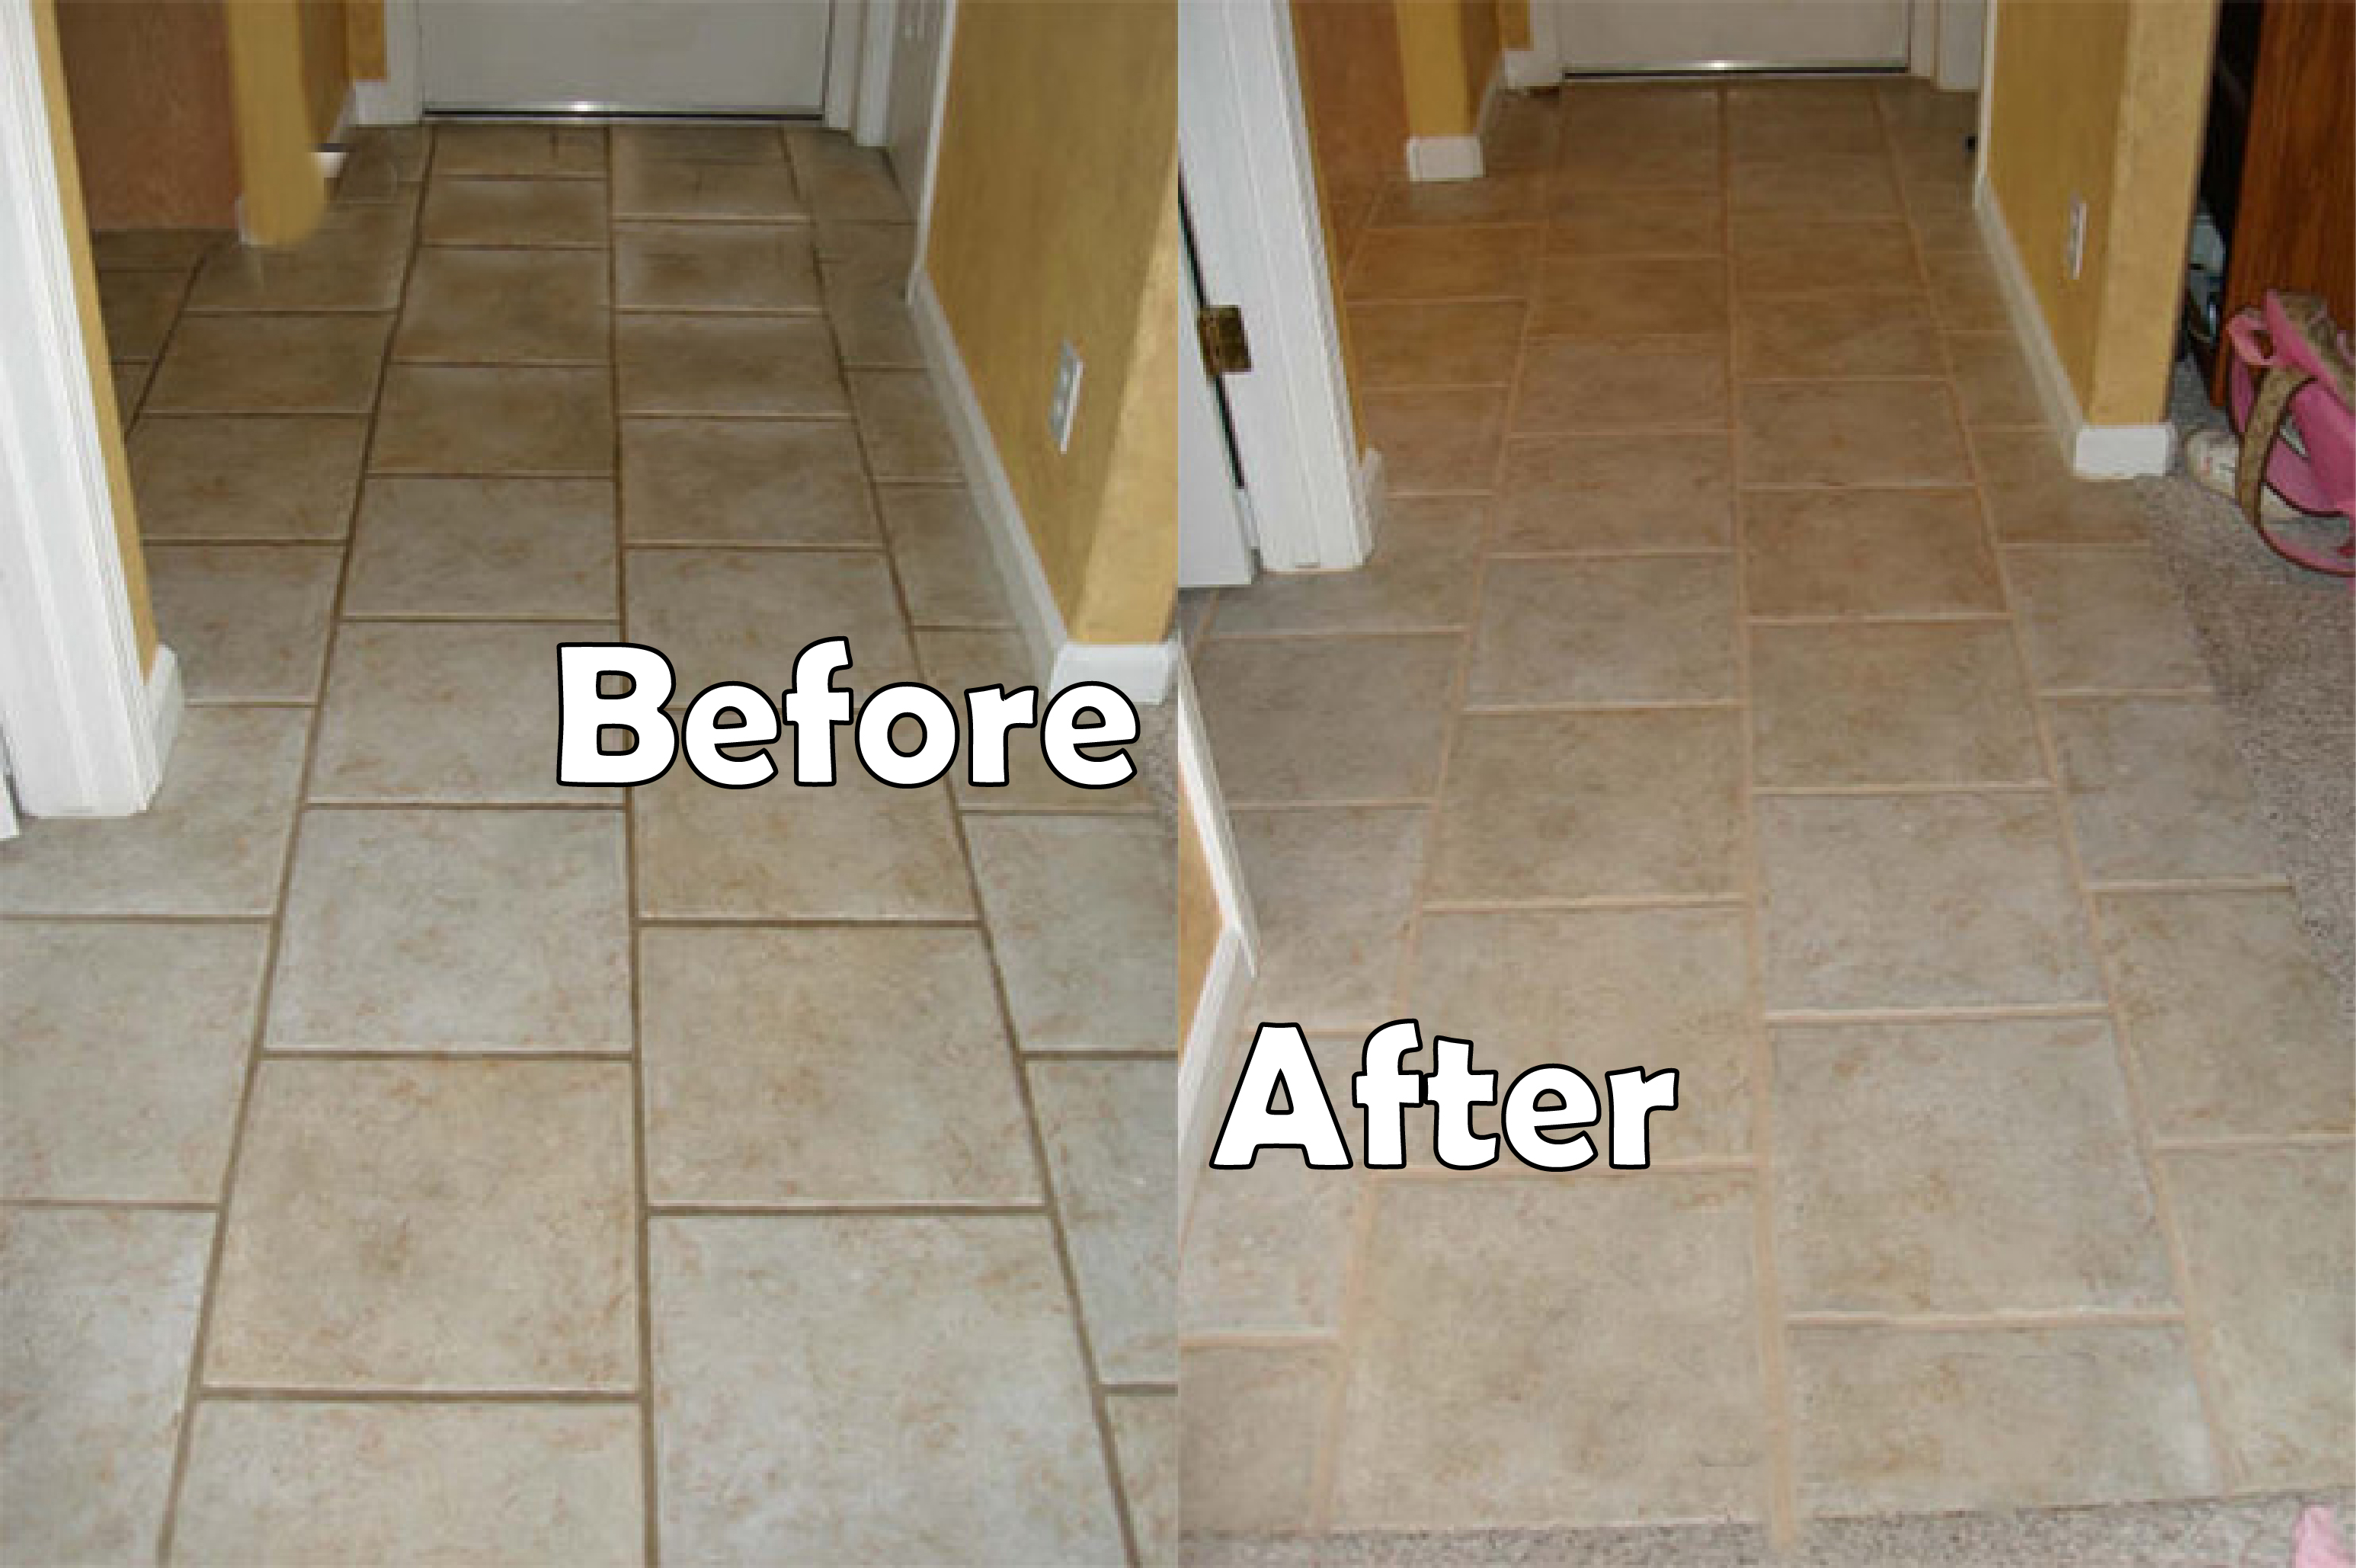 Grout Sealing Before Amp After Images Seal Systems